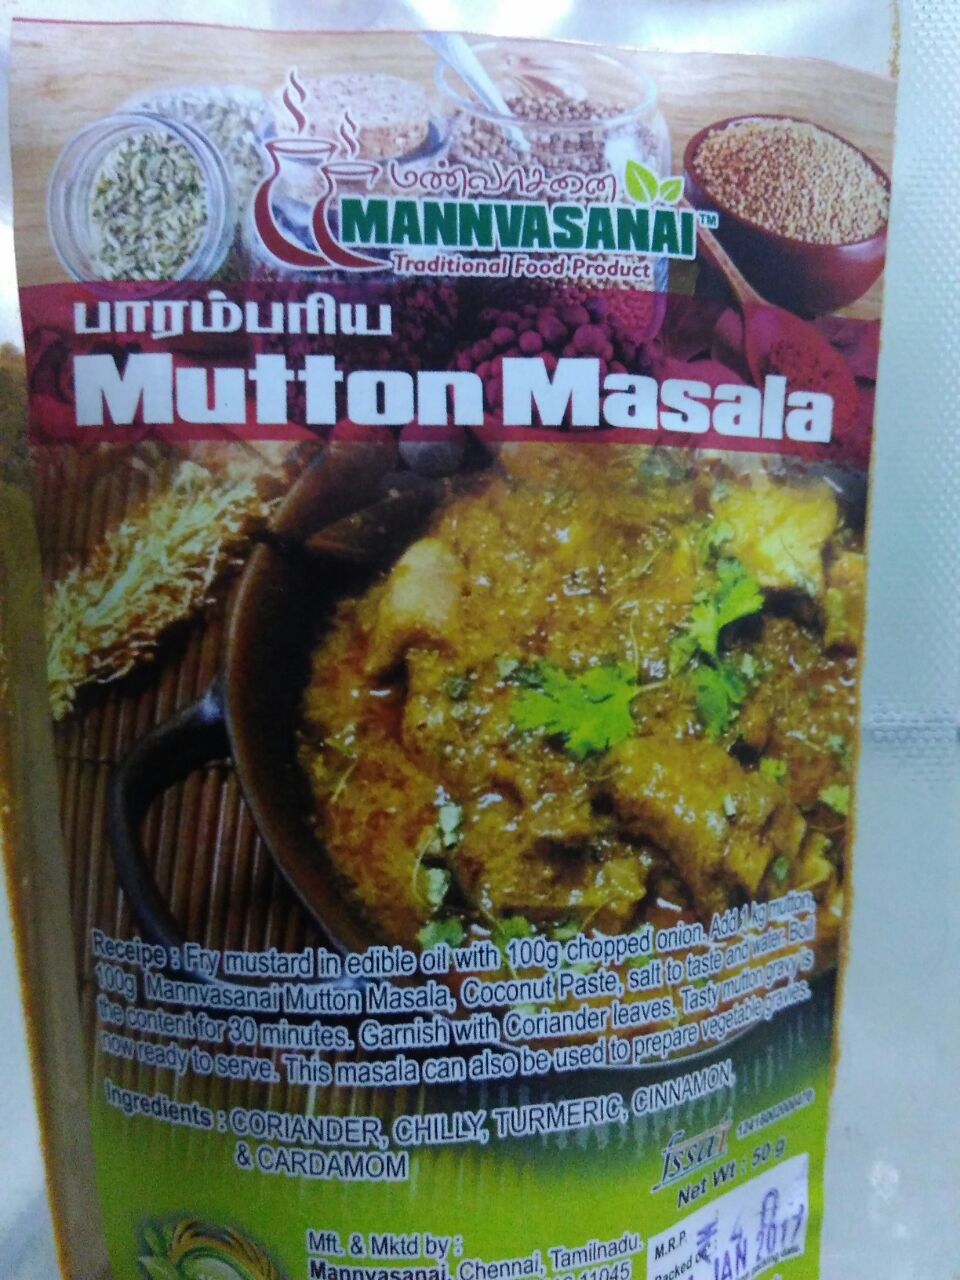 Mannvasanai Mutton Masala powder